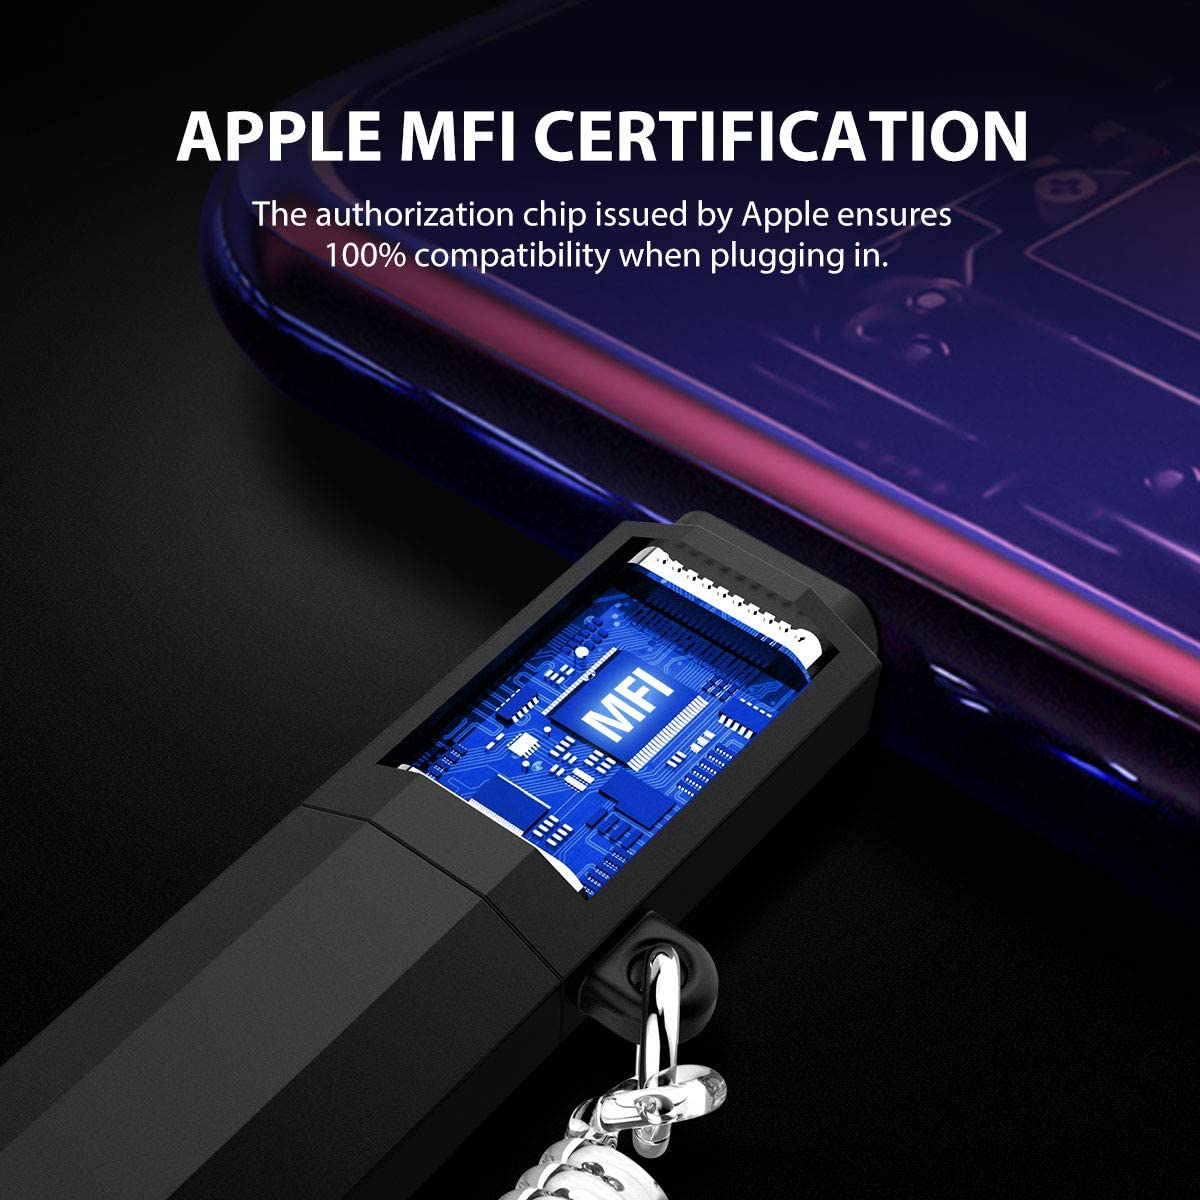 Apple MFi Certified Led iPhone Charger Cable, 2-in-1 Led Lightning Cable with 360 & Flowing Light ,3.3 ft (Red)